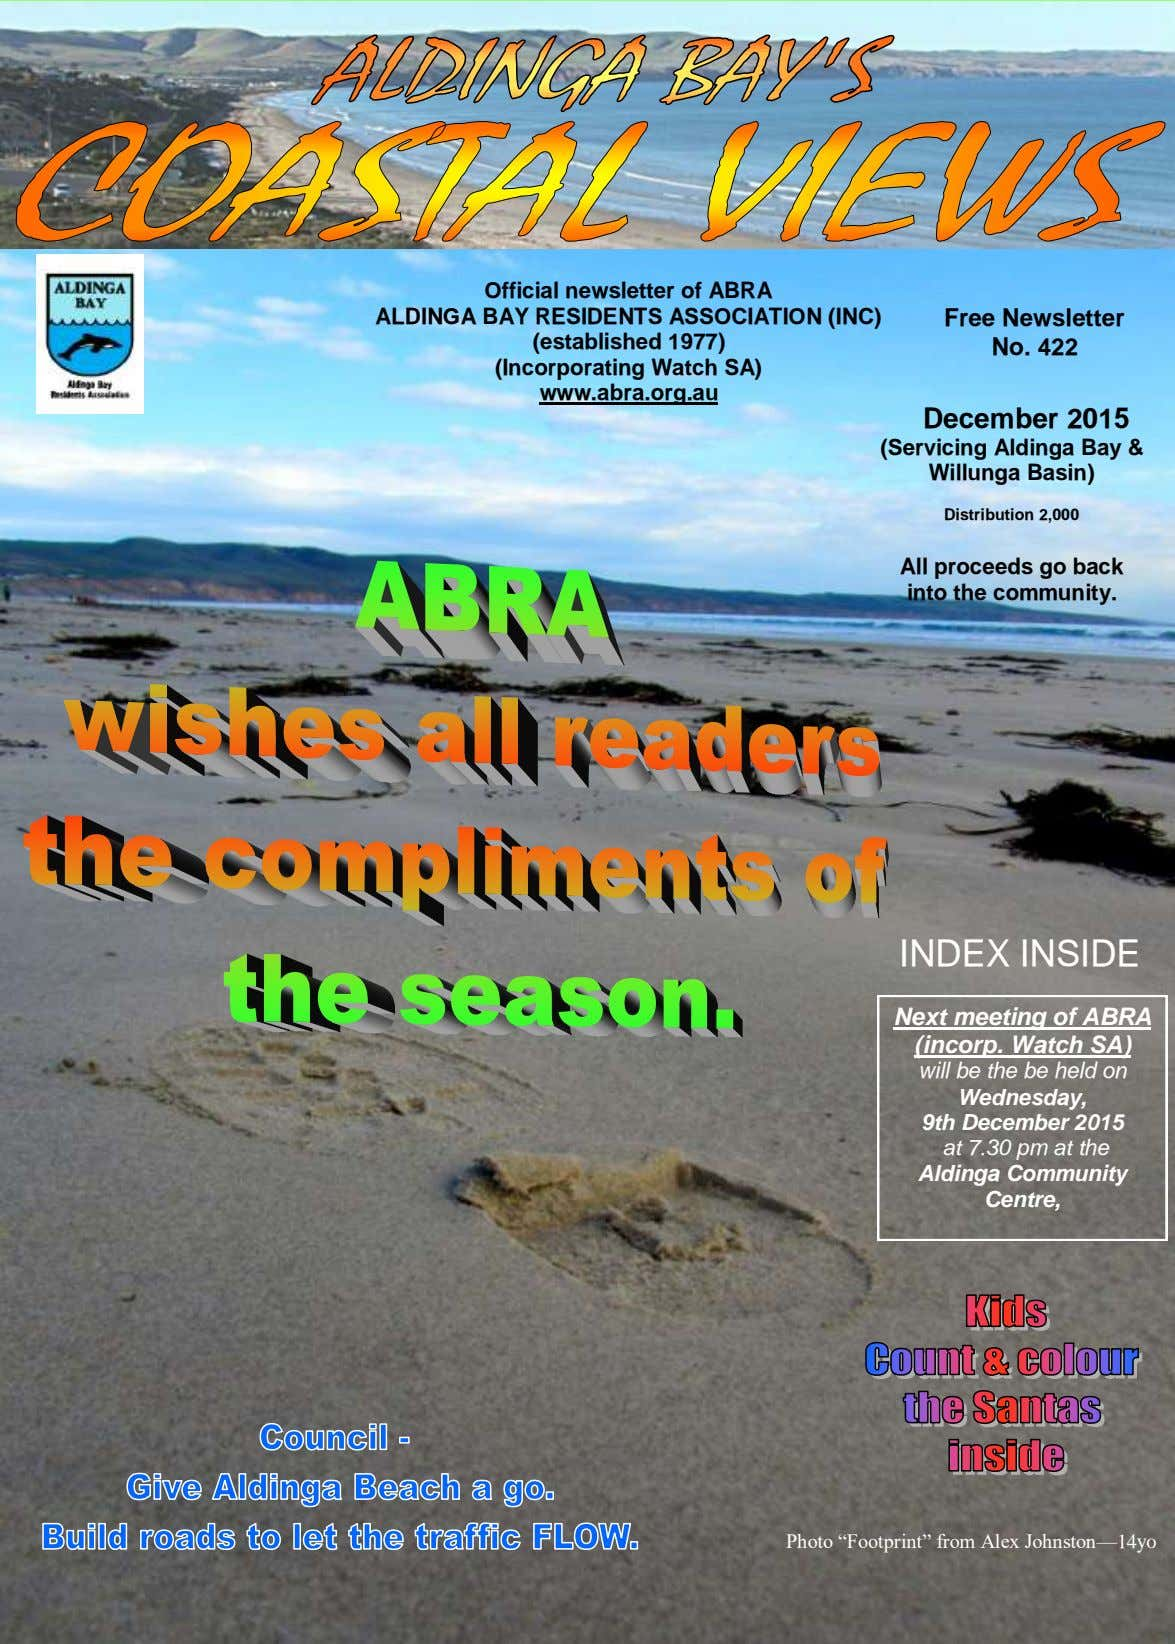 Official newsletter of ABRA ALDINGA BAY RESIDENTS ASSOCIATION (INC) (established 1977) (Incorporating Watch SA)